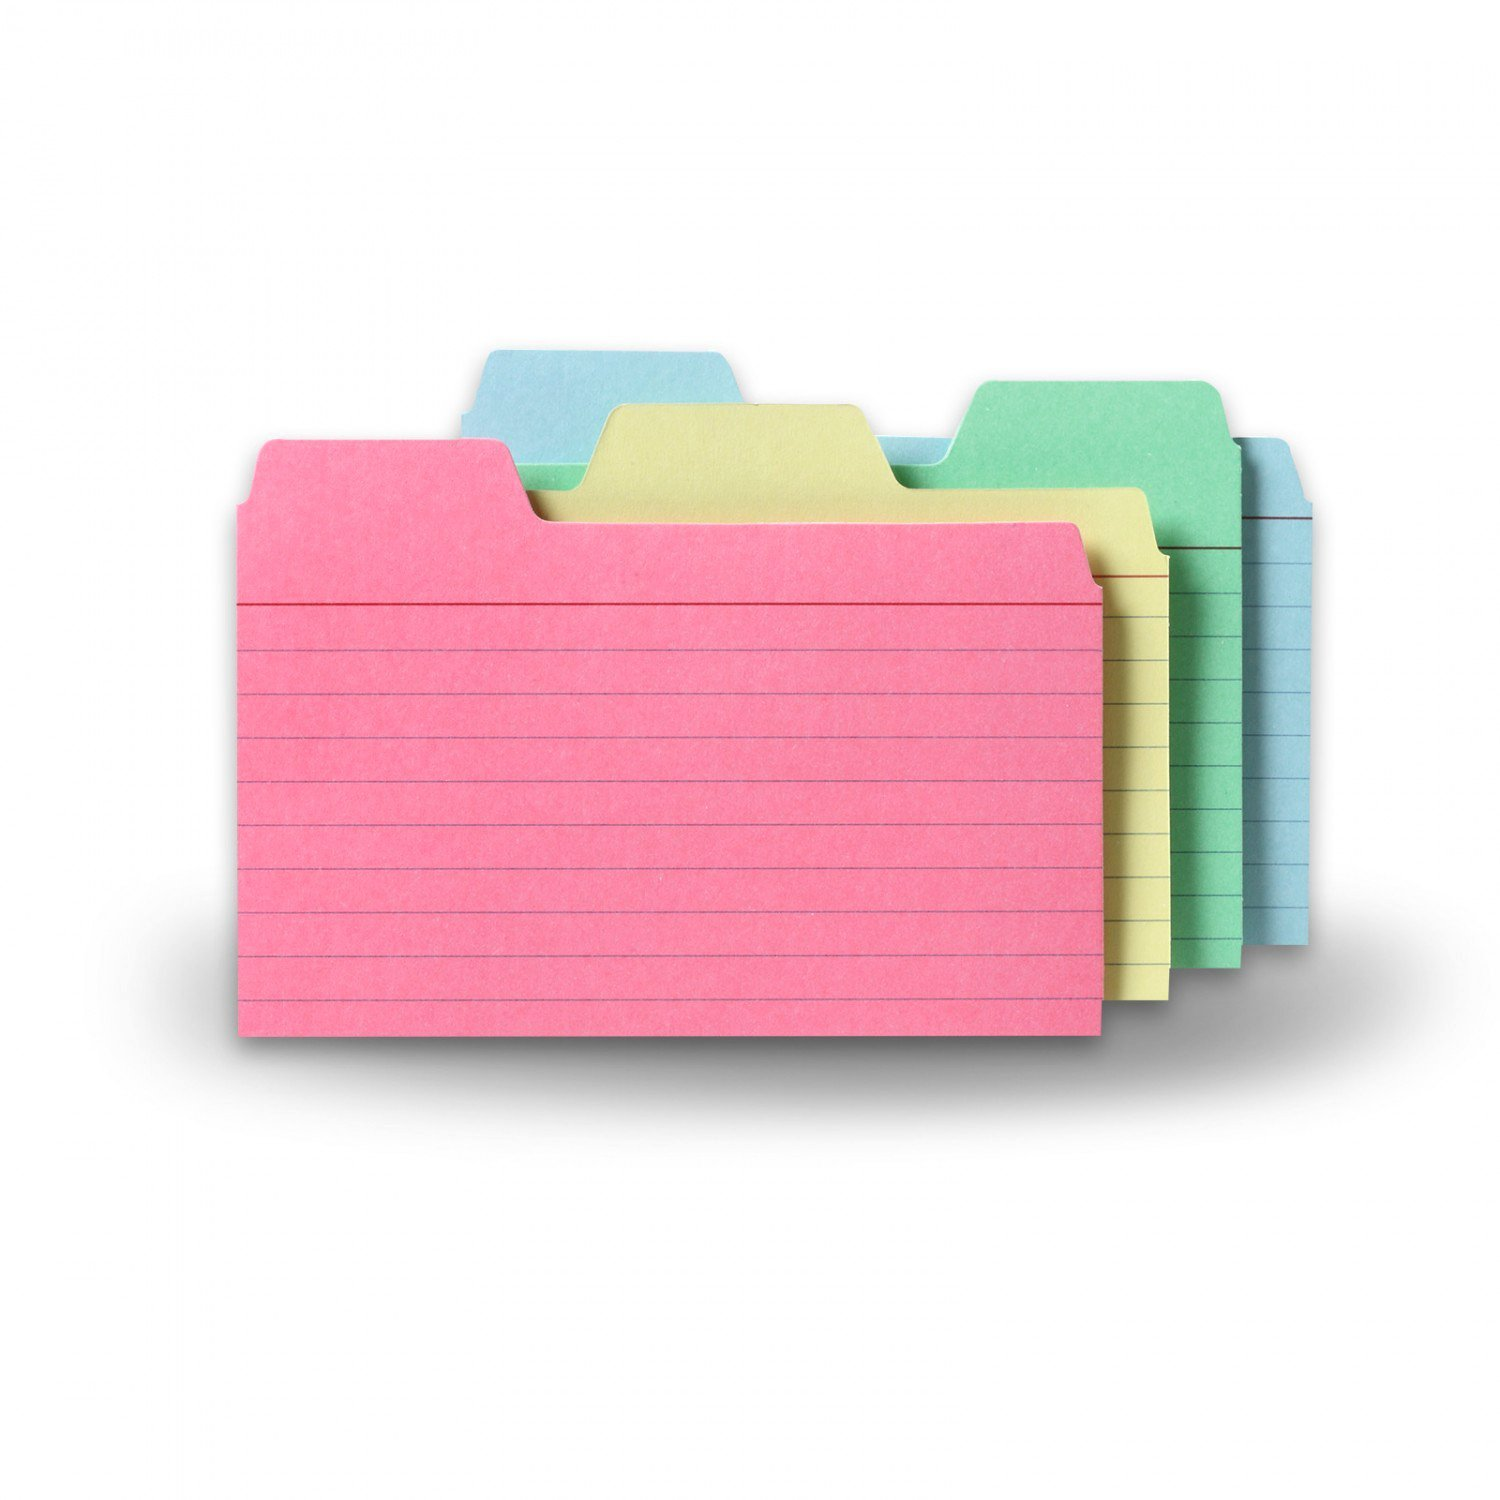 picture relating to Printable Index Cards 4x6 named Uncover-It Tabbed Index Playing cards, 3 x 5 Inches, Varied Hues, 48-Pack (Toes07216)